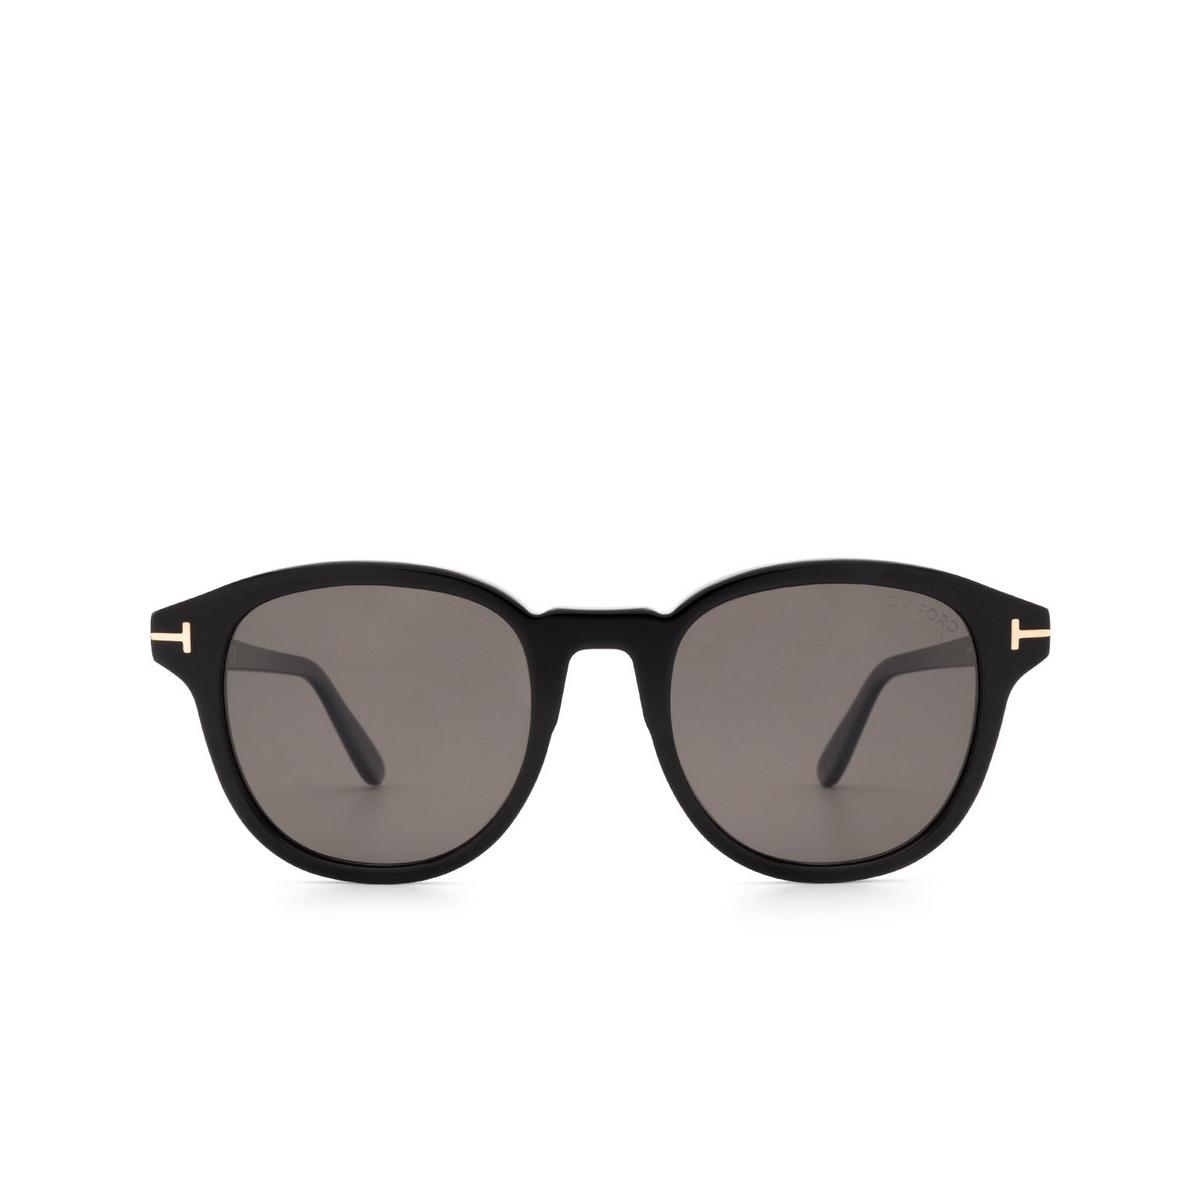 Tom Ford® Square Sunglasses: Jameson FT0752 color Black 01D - front view.